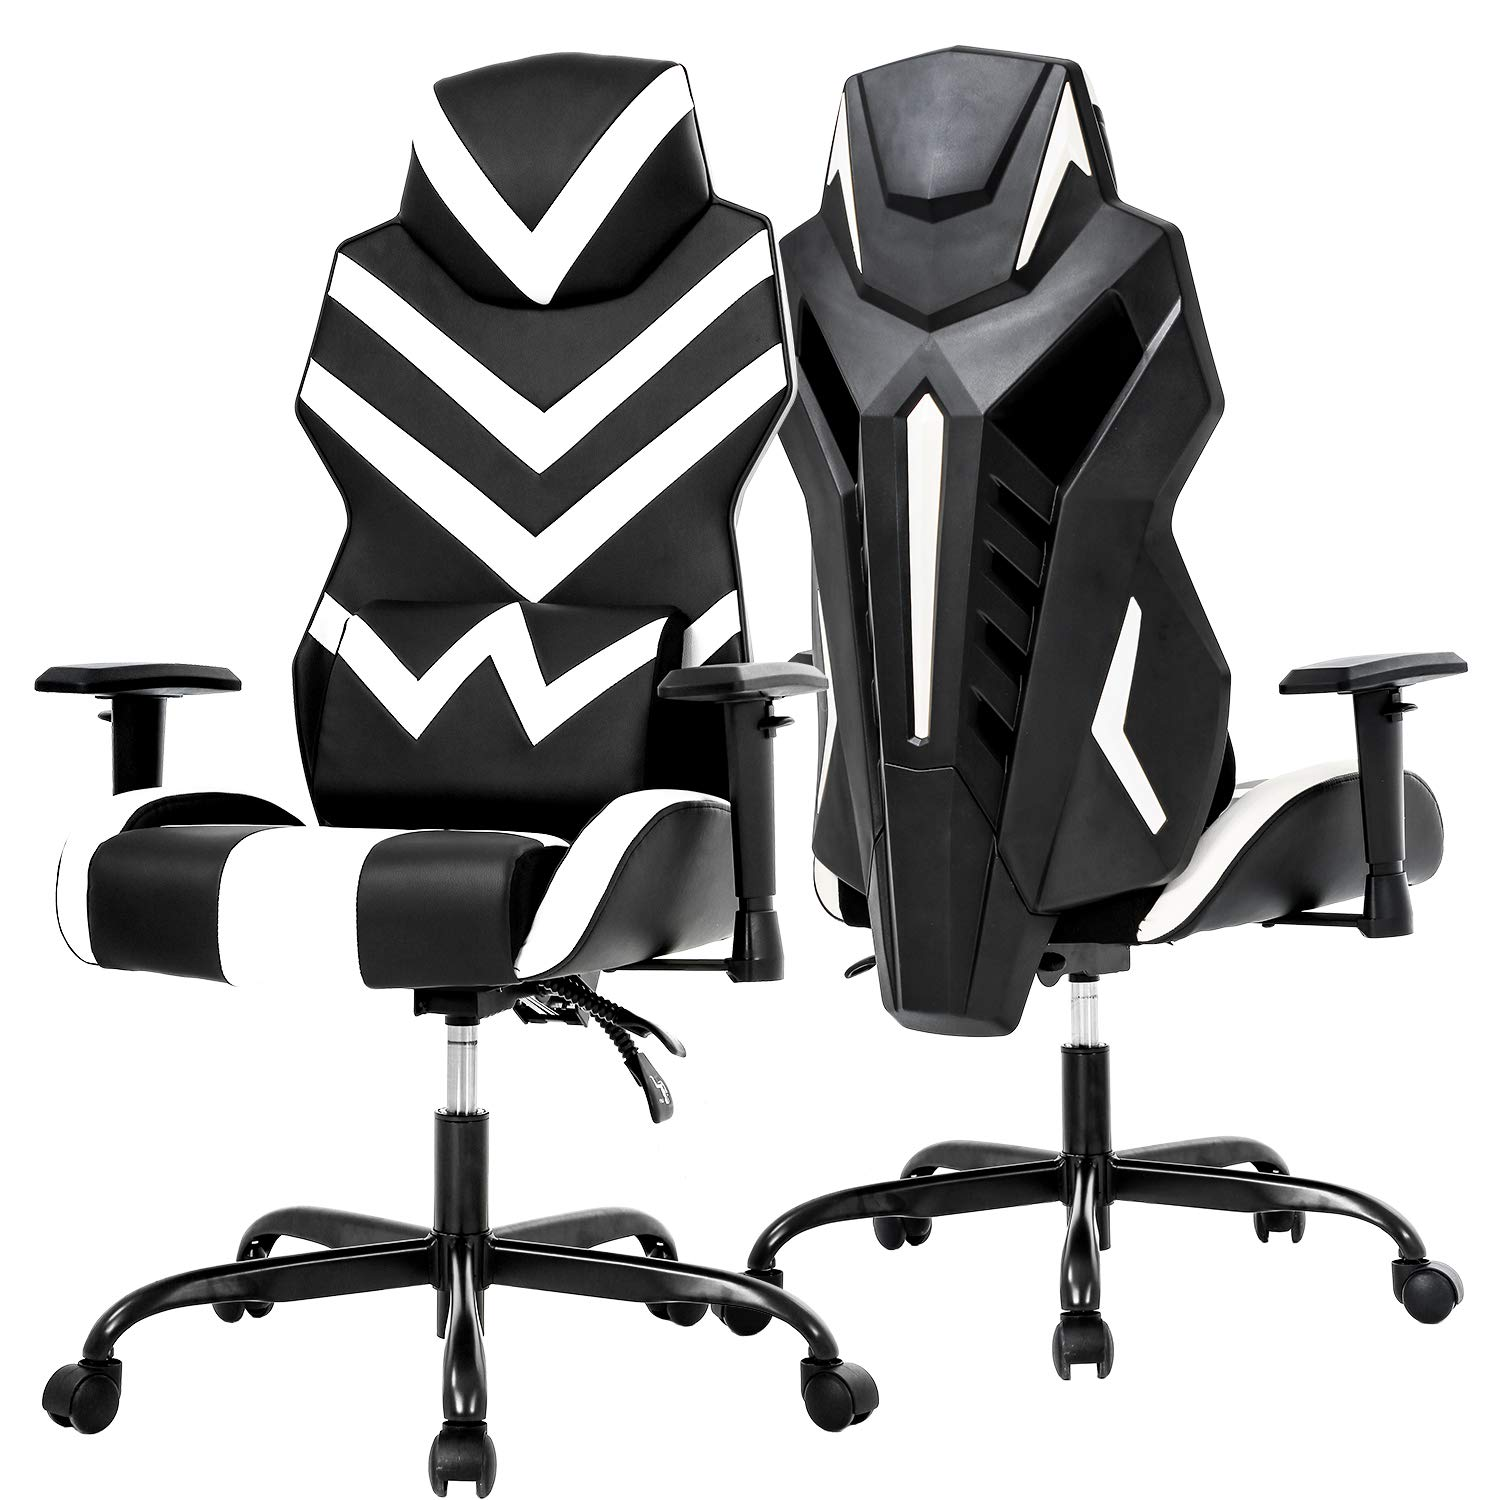 PC Gaming Chair Ergonomic Office Chair Desk Chair High Back Racing Computer Chair with Lumbar Support Adjustable Arms Headrest Task Executive Swivel Rolling Chair for Adults Girls,White by BestOffice